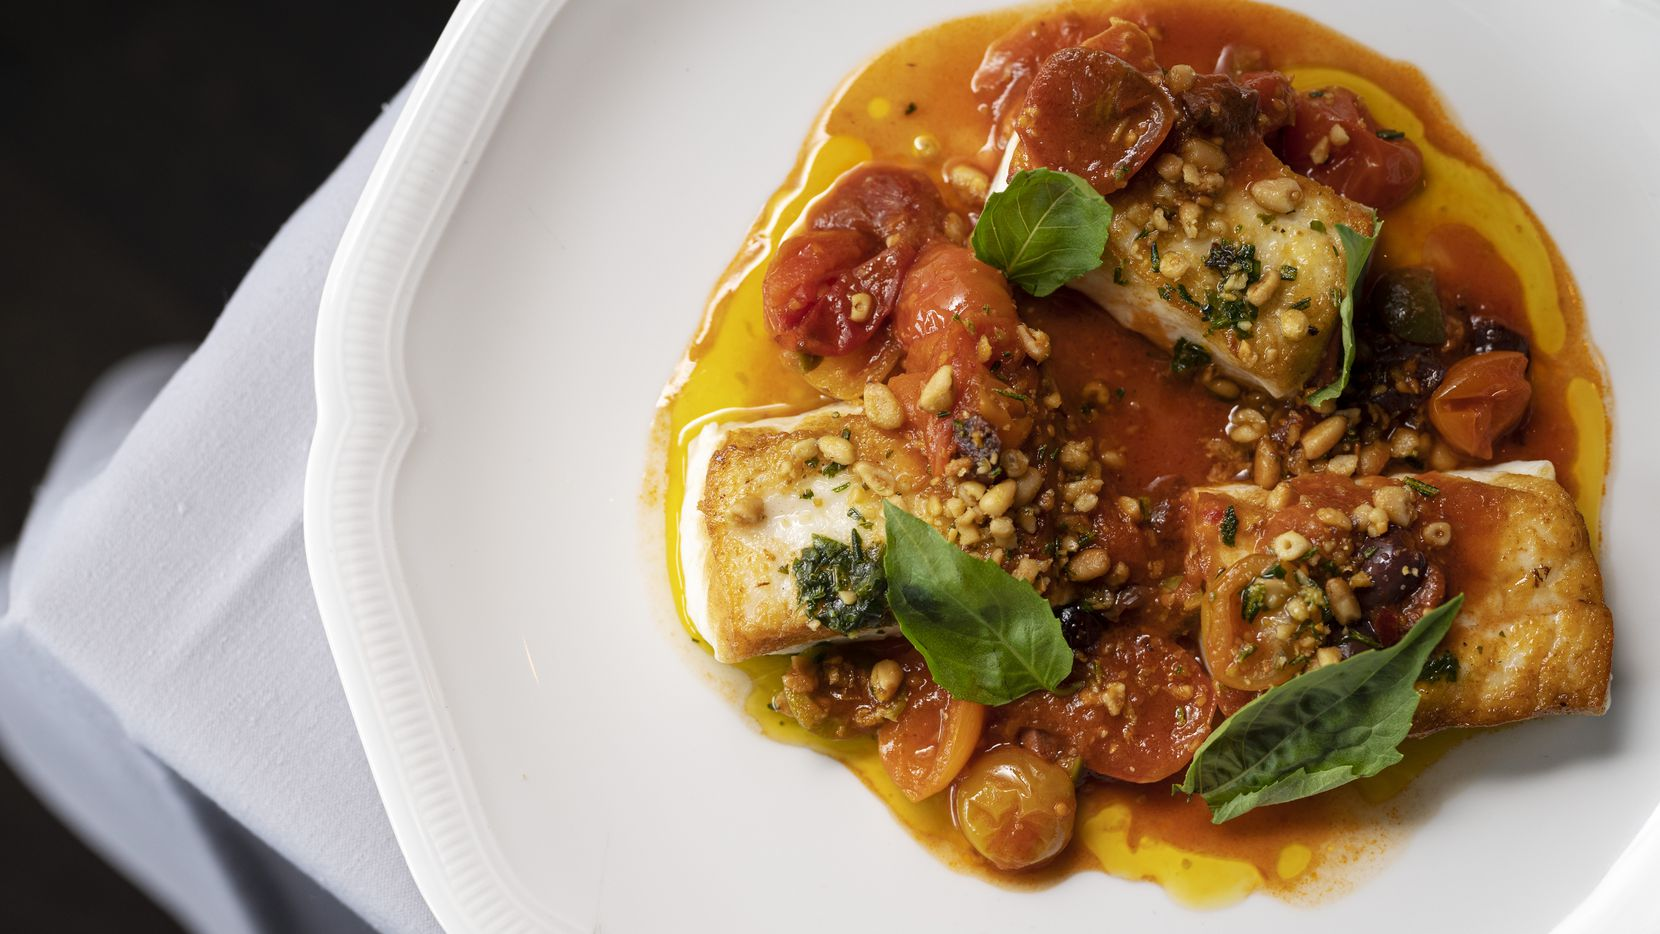 Roasted Halibut with tomato and olive sauce from Chef Eric Dreyer at Monarch restaurant in Downtown Dallas.